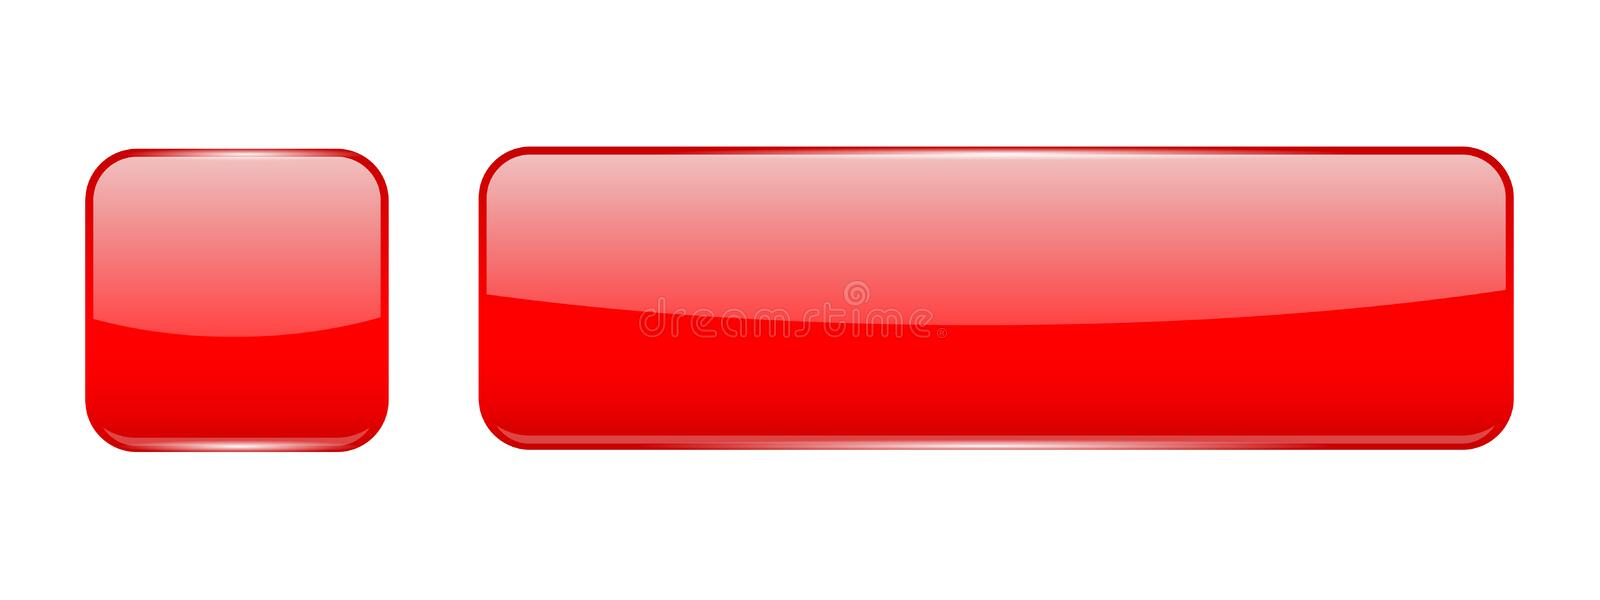 Red glass buttons. Web 3d shiny icons. Vector illustration isolated on white background royalty free illustration